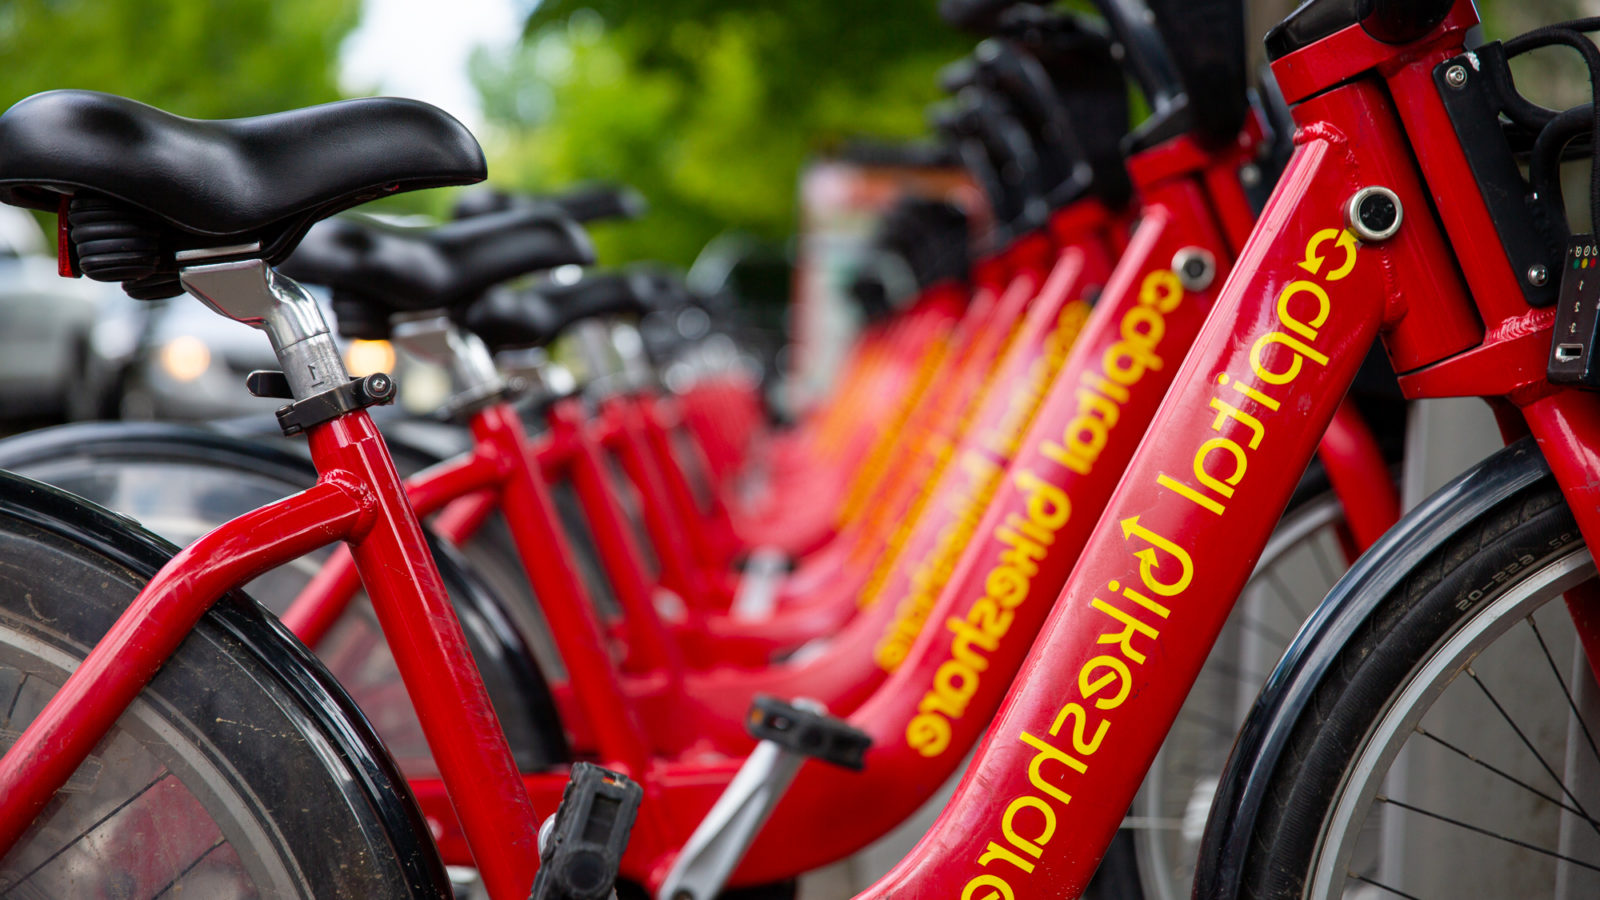 A row of red Capital Bikershare bikes stand neatly side by side.